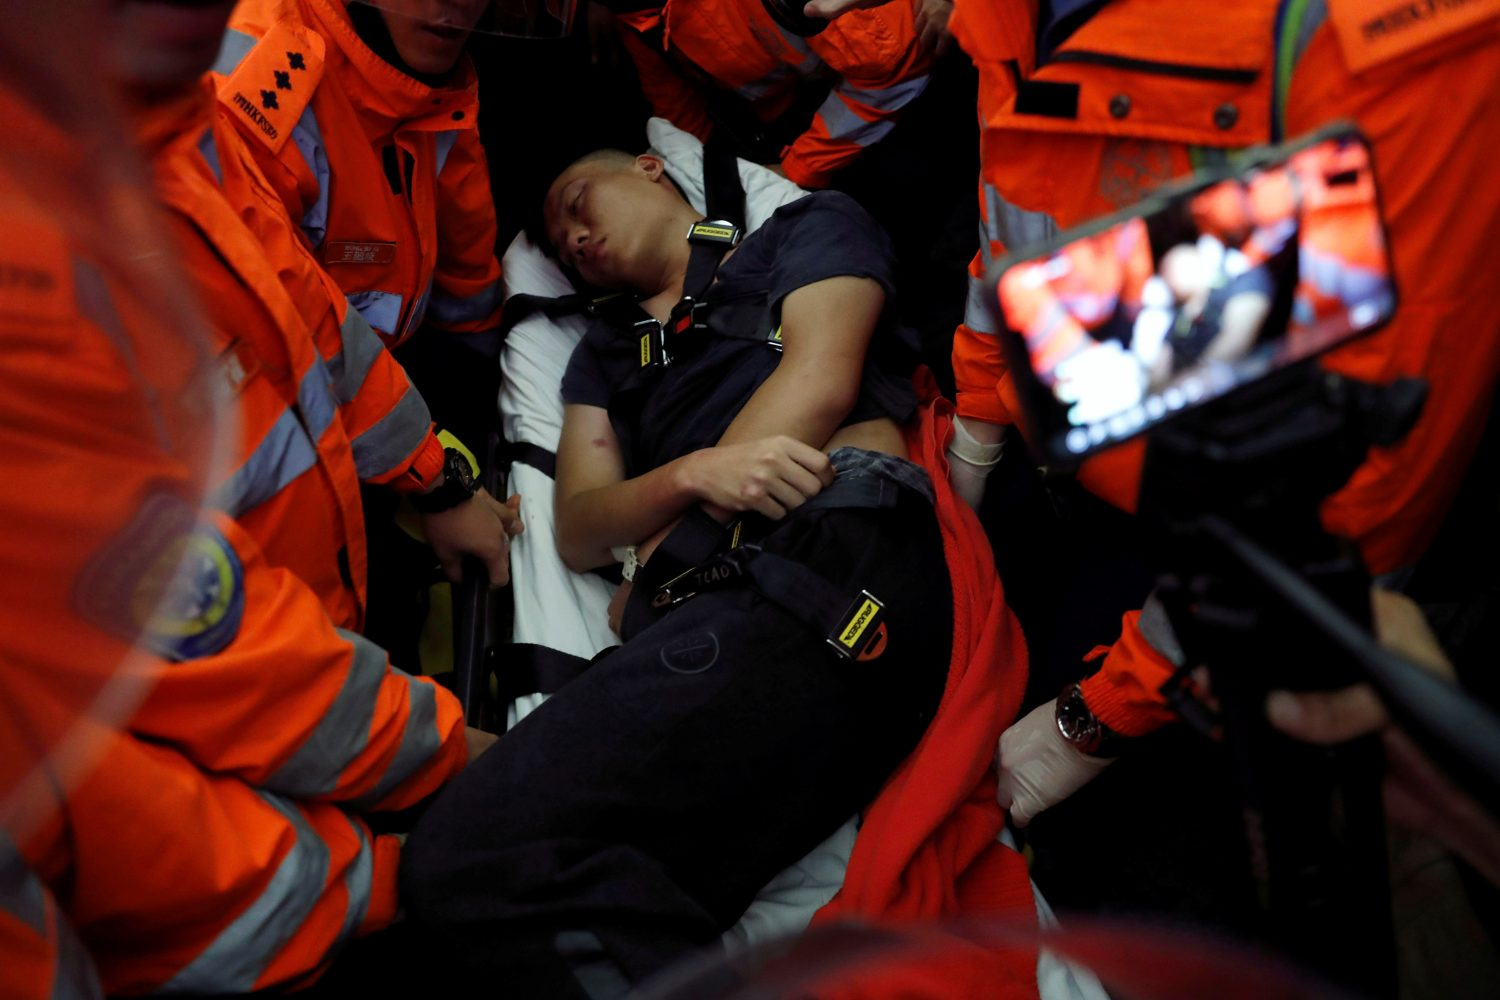 Medics attempt to remove an injured man who anti-government protesters said was a Chinese policeman during a mass demonstration at the Hong Kong international airport, in Hong Kong, China, August 13, 2019. REUTERS/Tyrone Siu